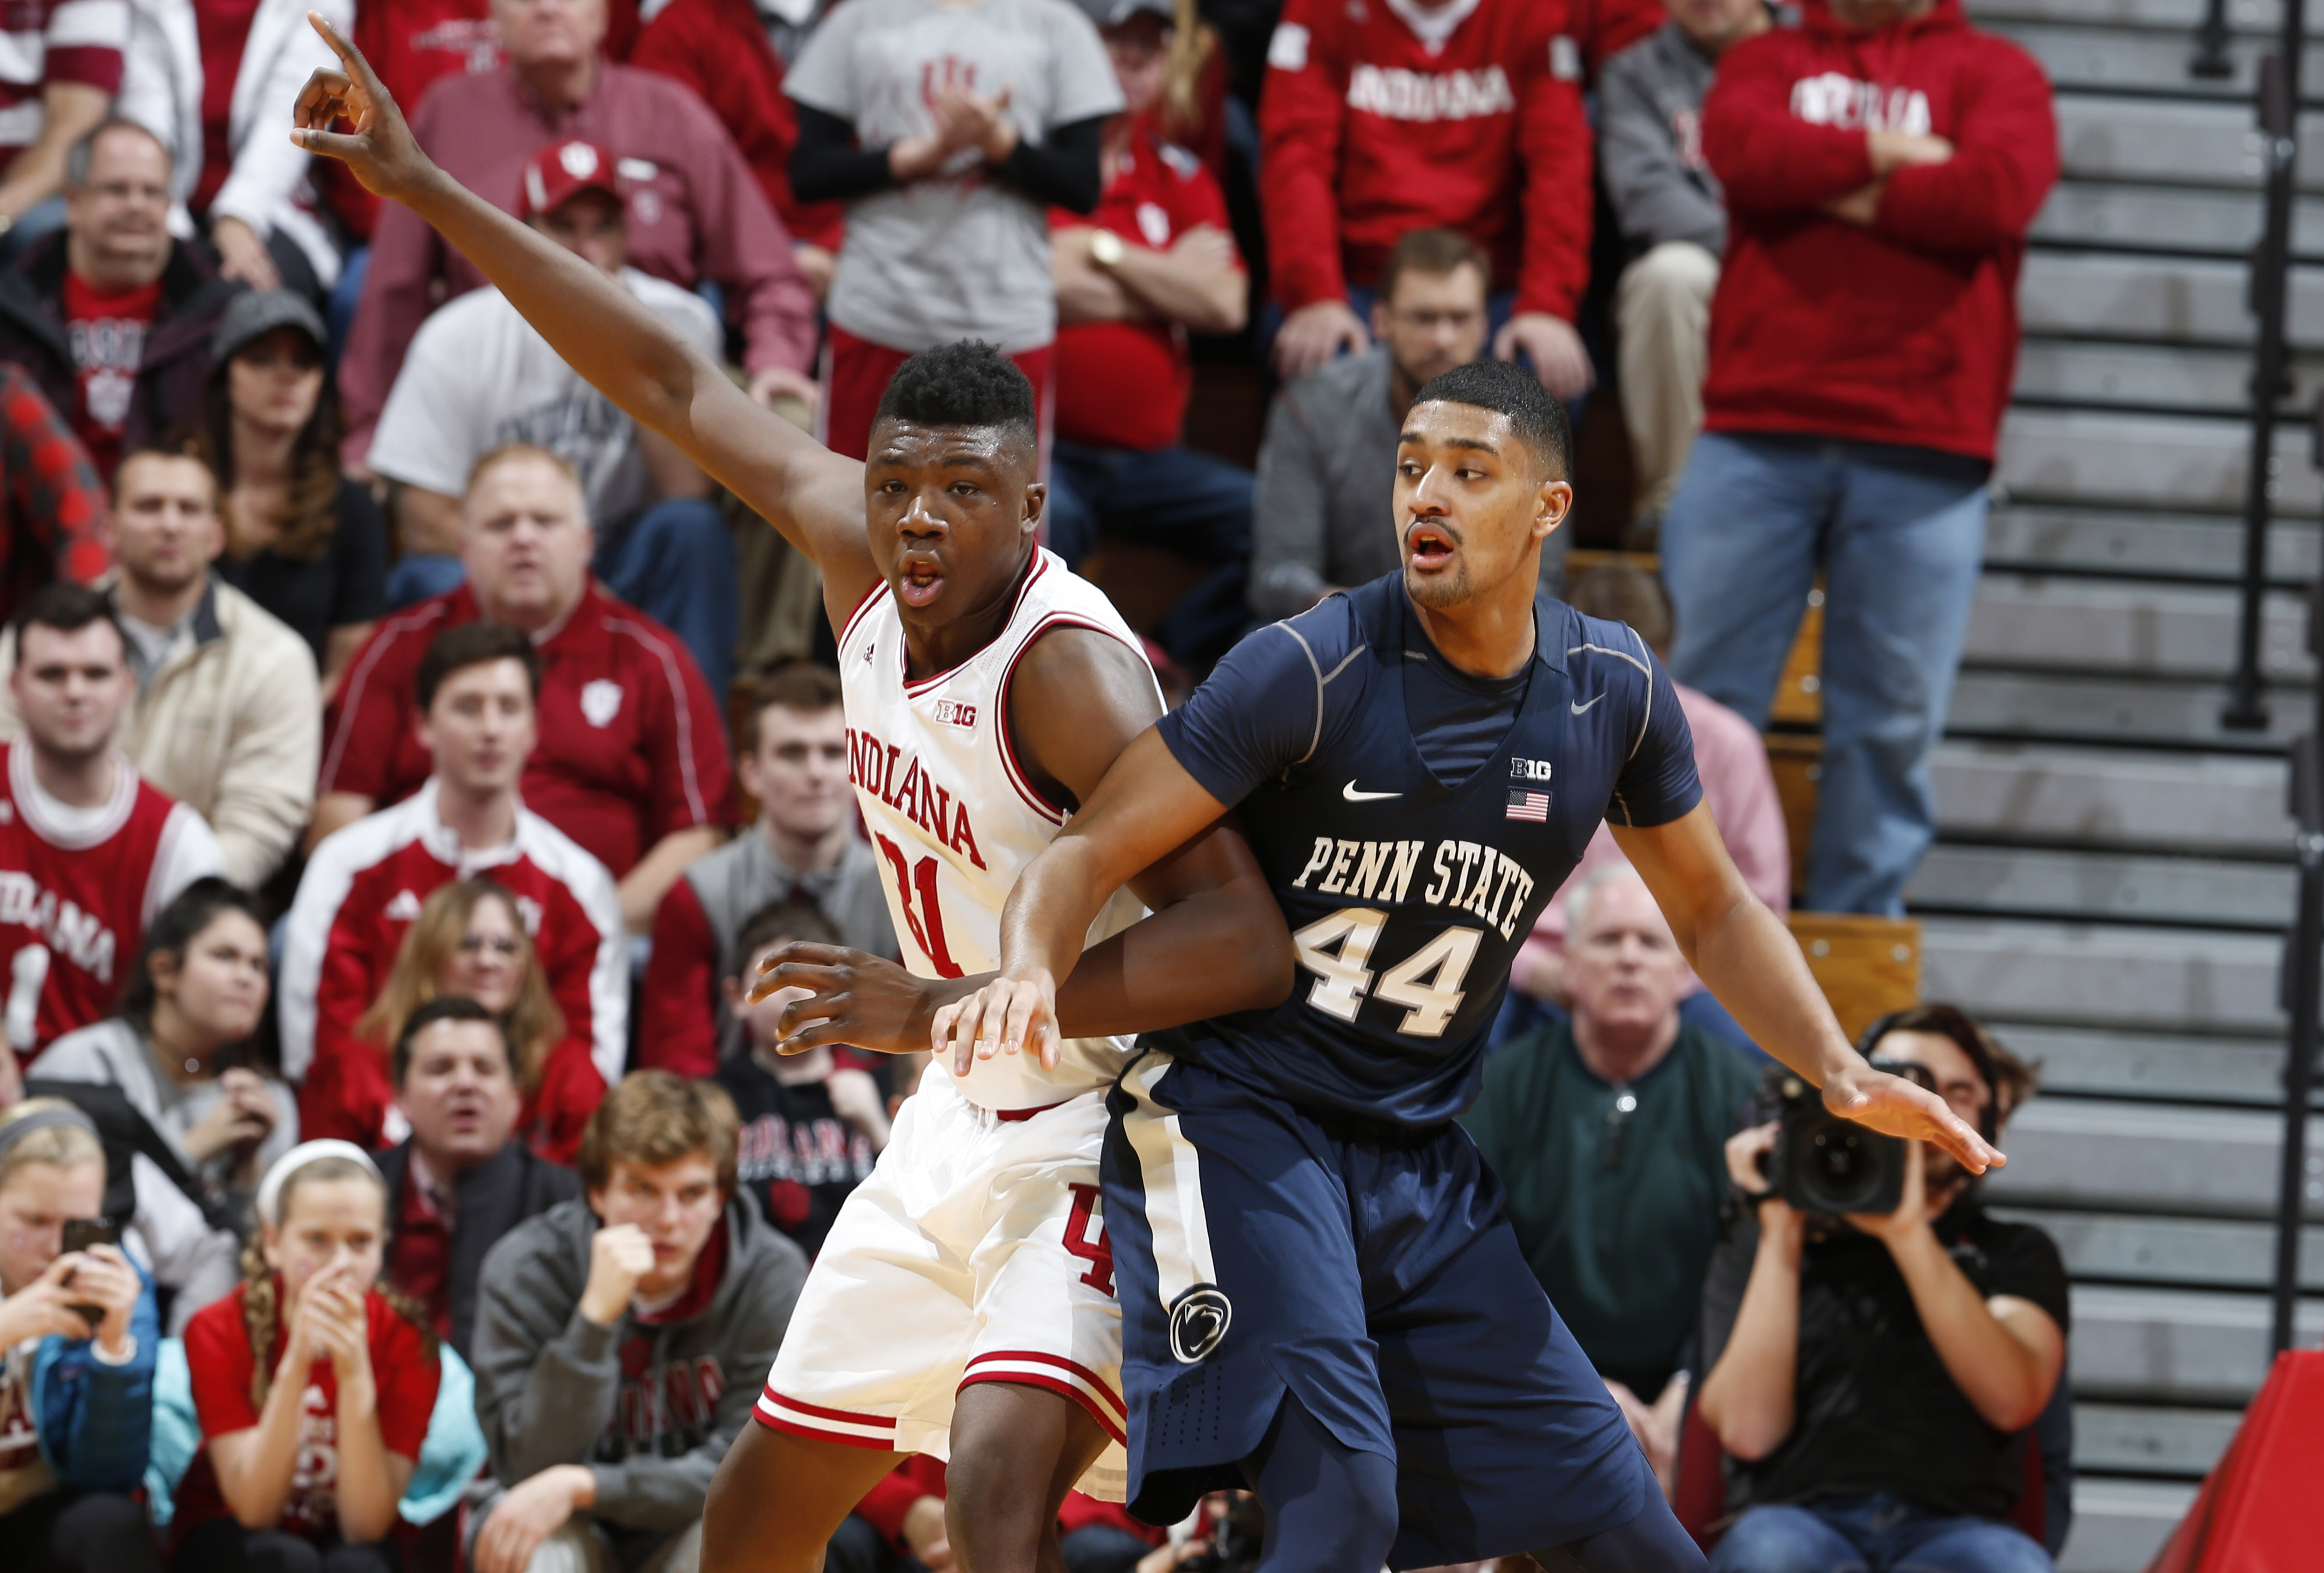 9853225-ncaa-basketball-penn-state-at-indiana